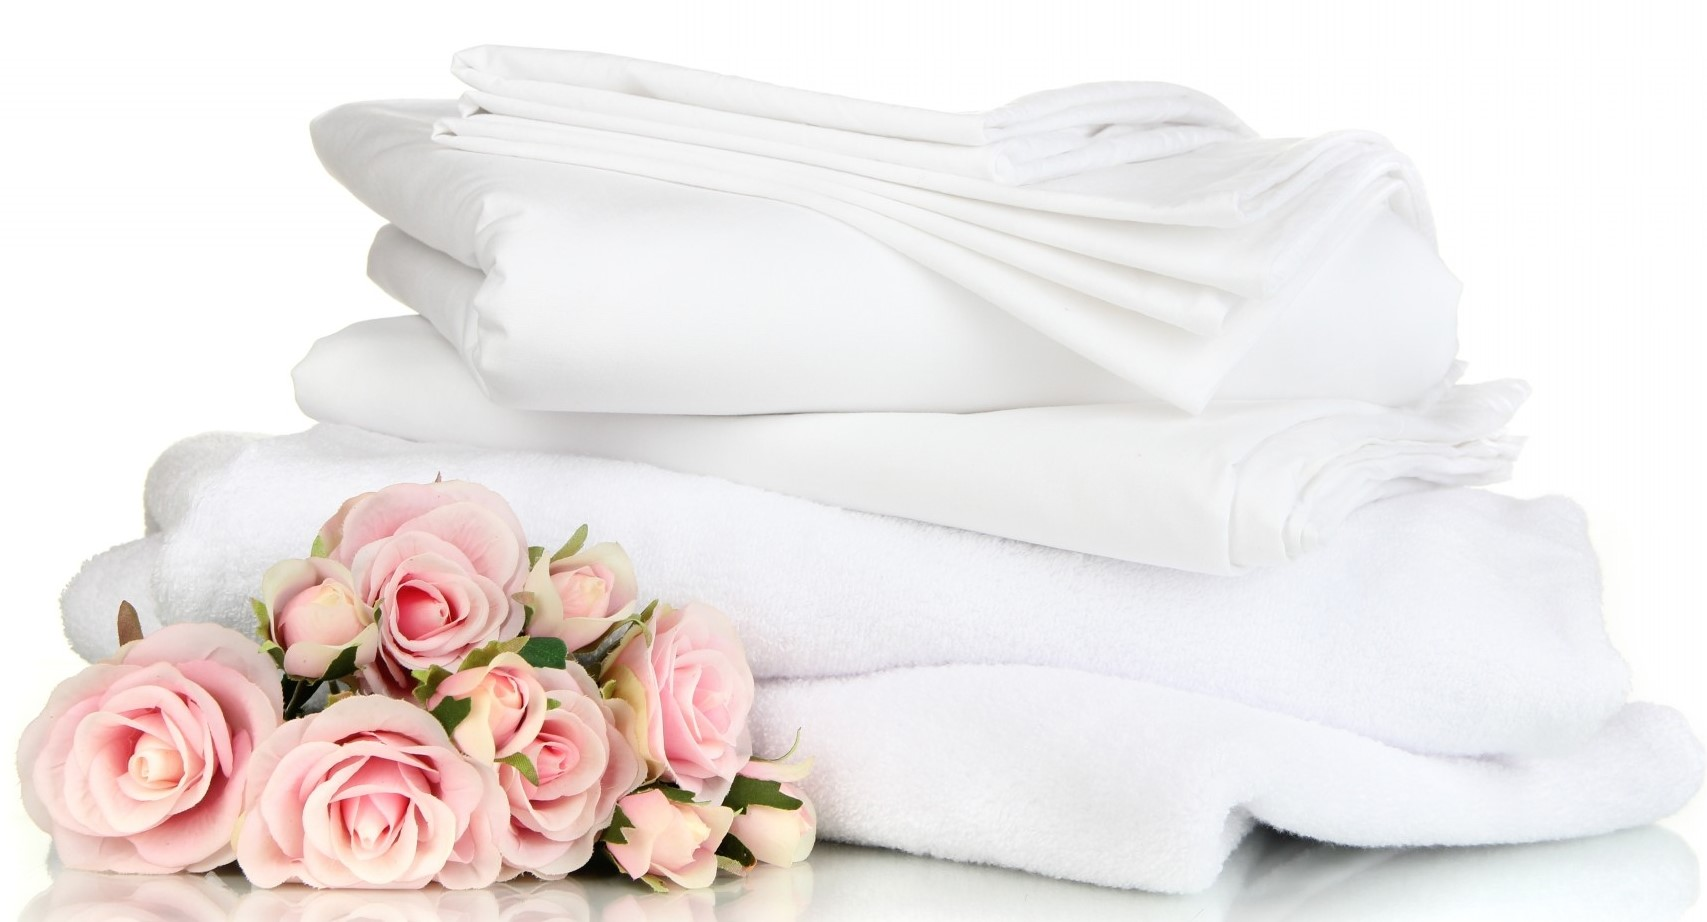 Towels and bed linen included